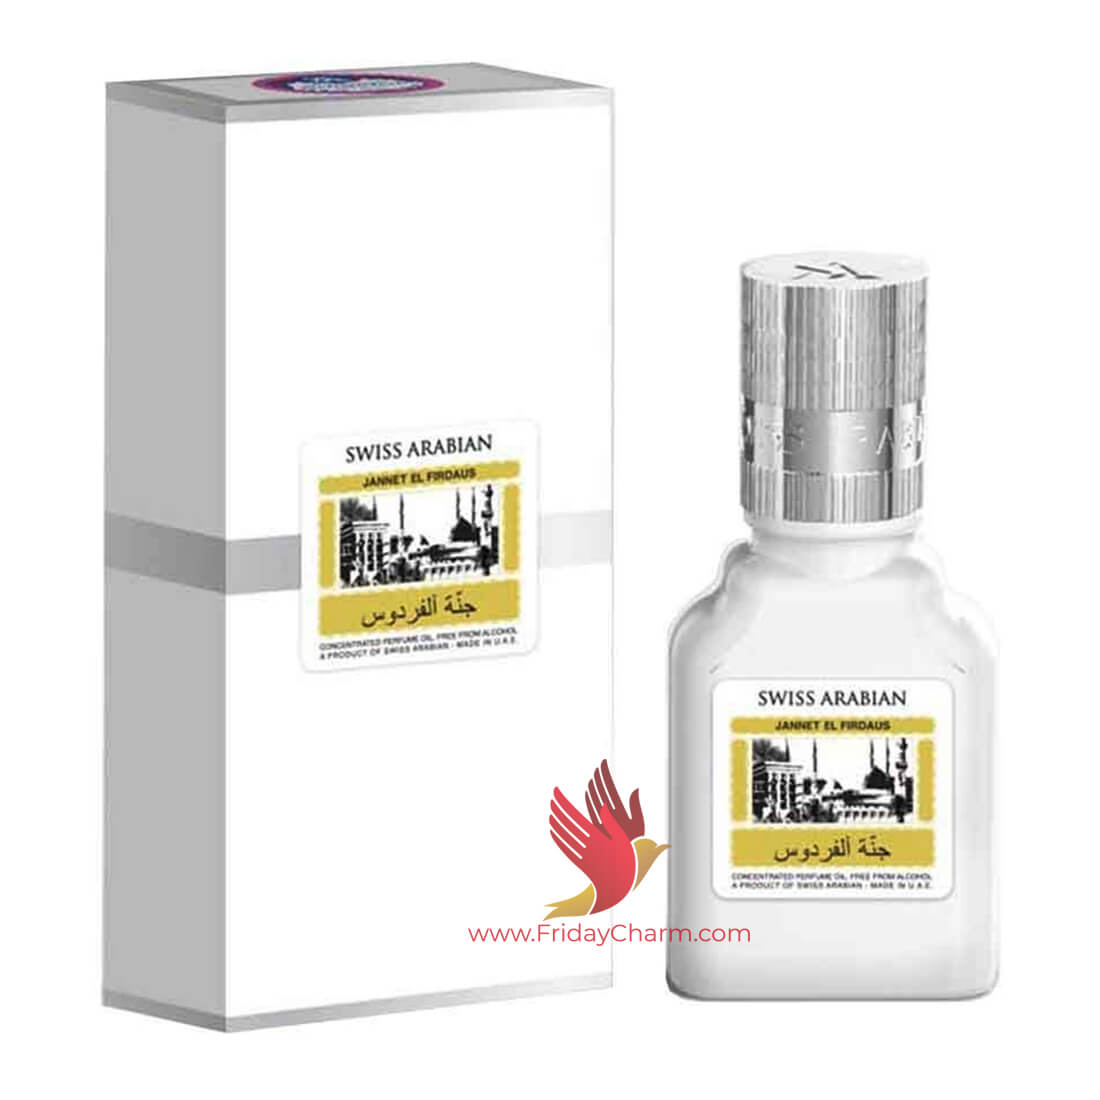 Swiss Arabian Jannat ul Firdaus 9ml Attar Red & White Pack of 2